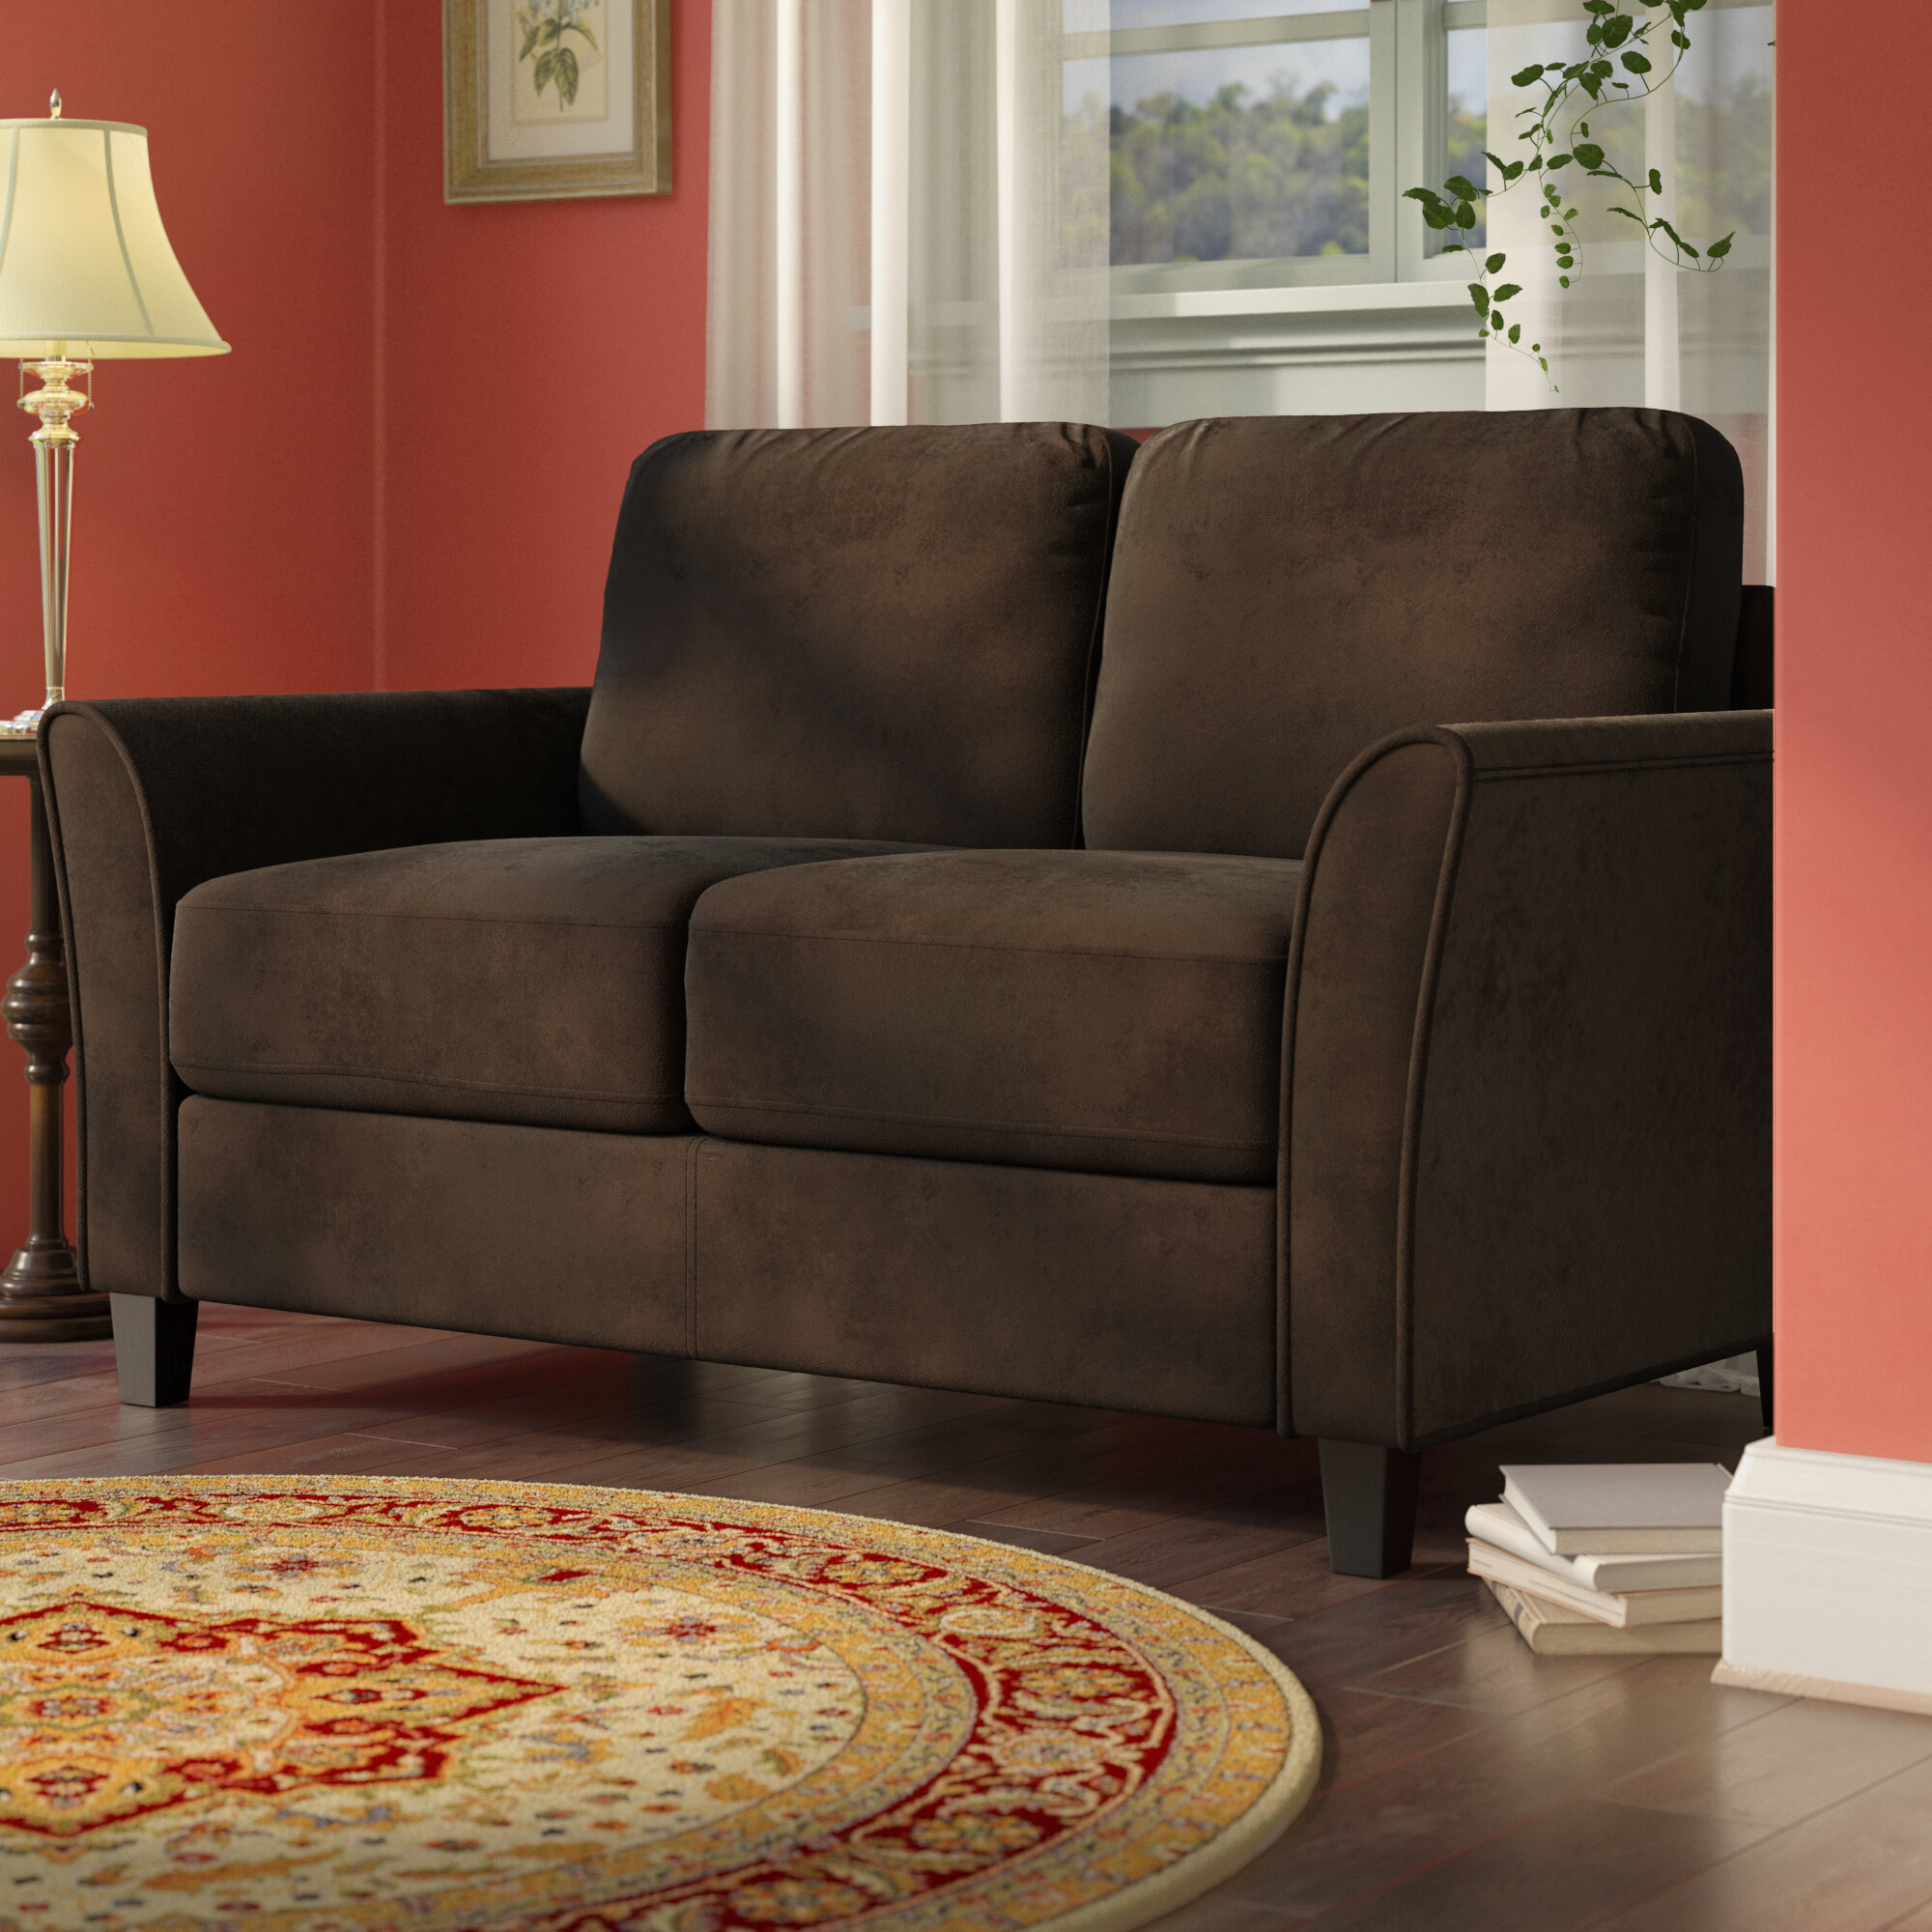 Bay Window Couch Wayfair